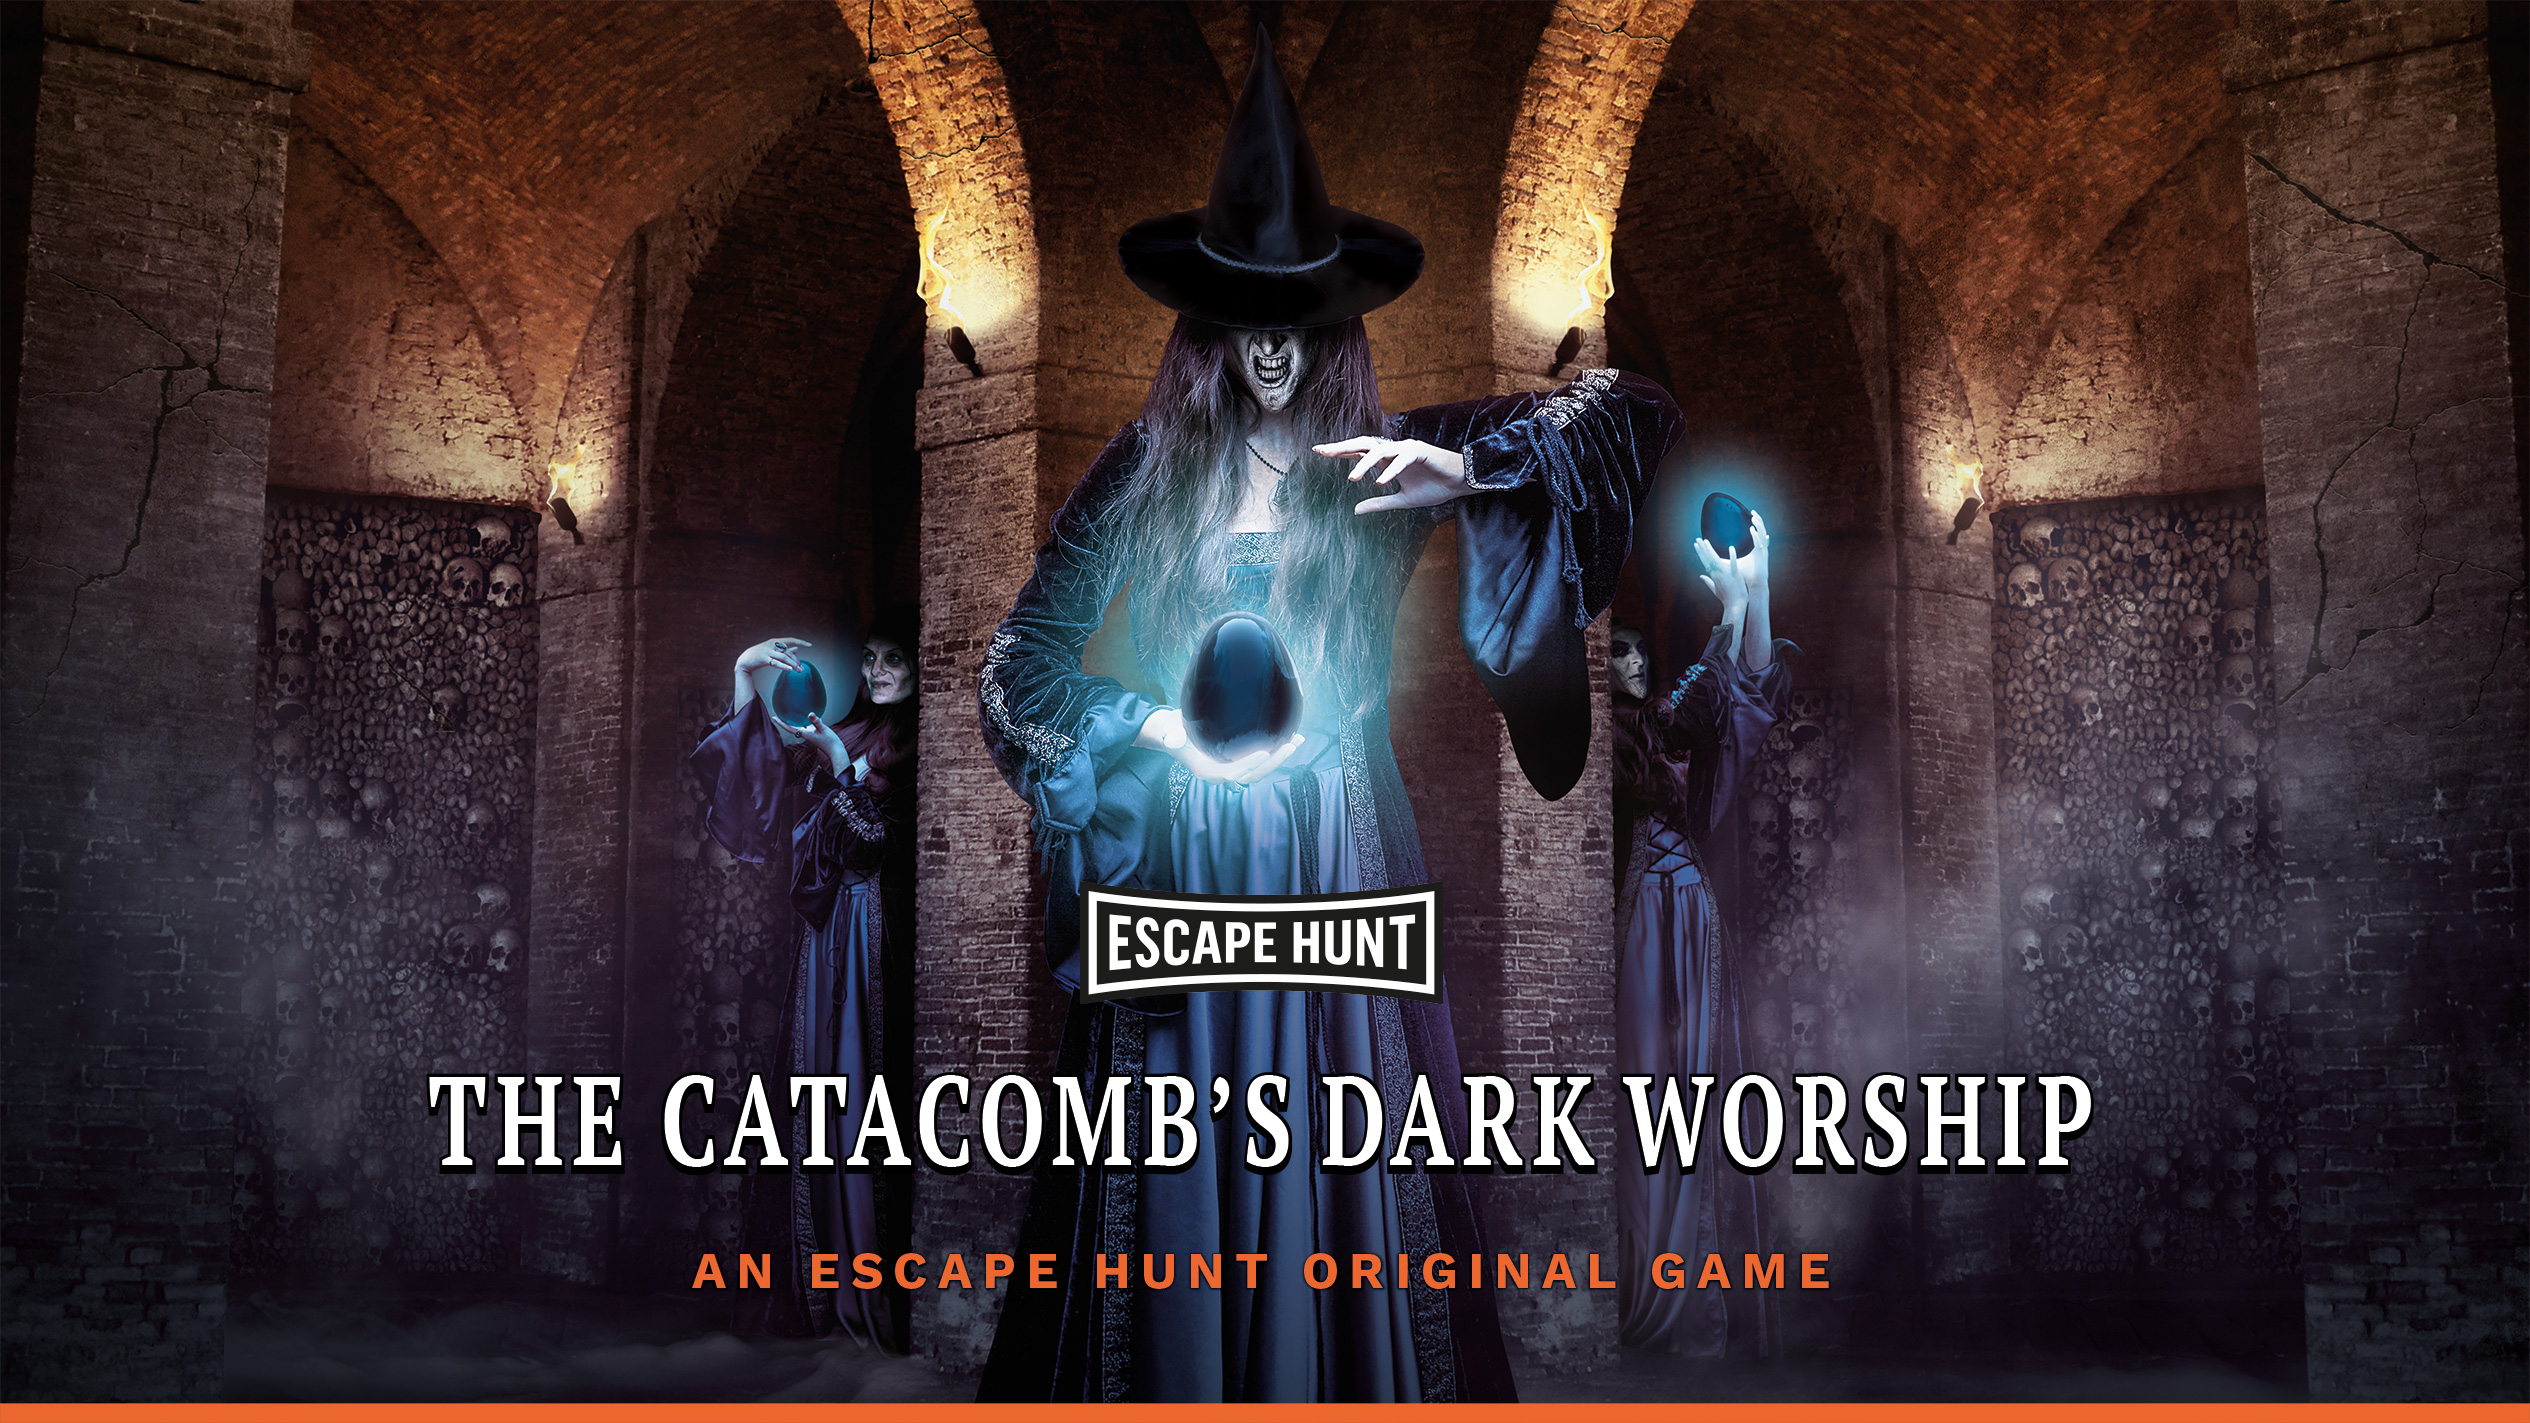 Escape Hunt Clermont Ferrand - Escape Game Clermont Ferrand The Catacomb's Dark Worship